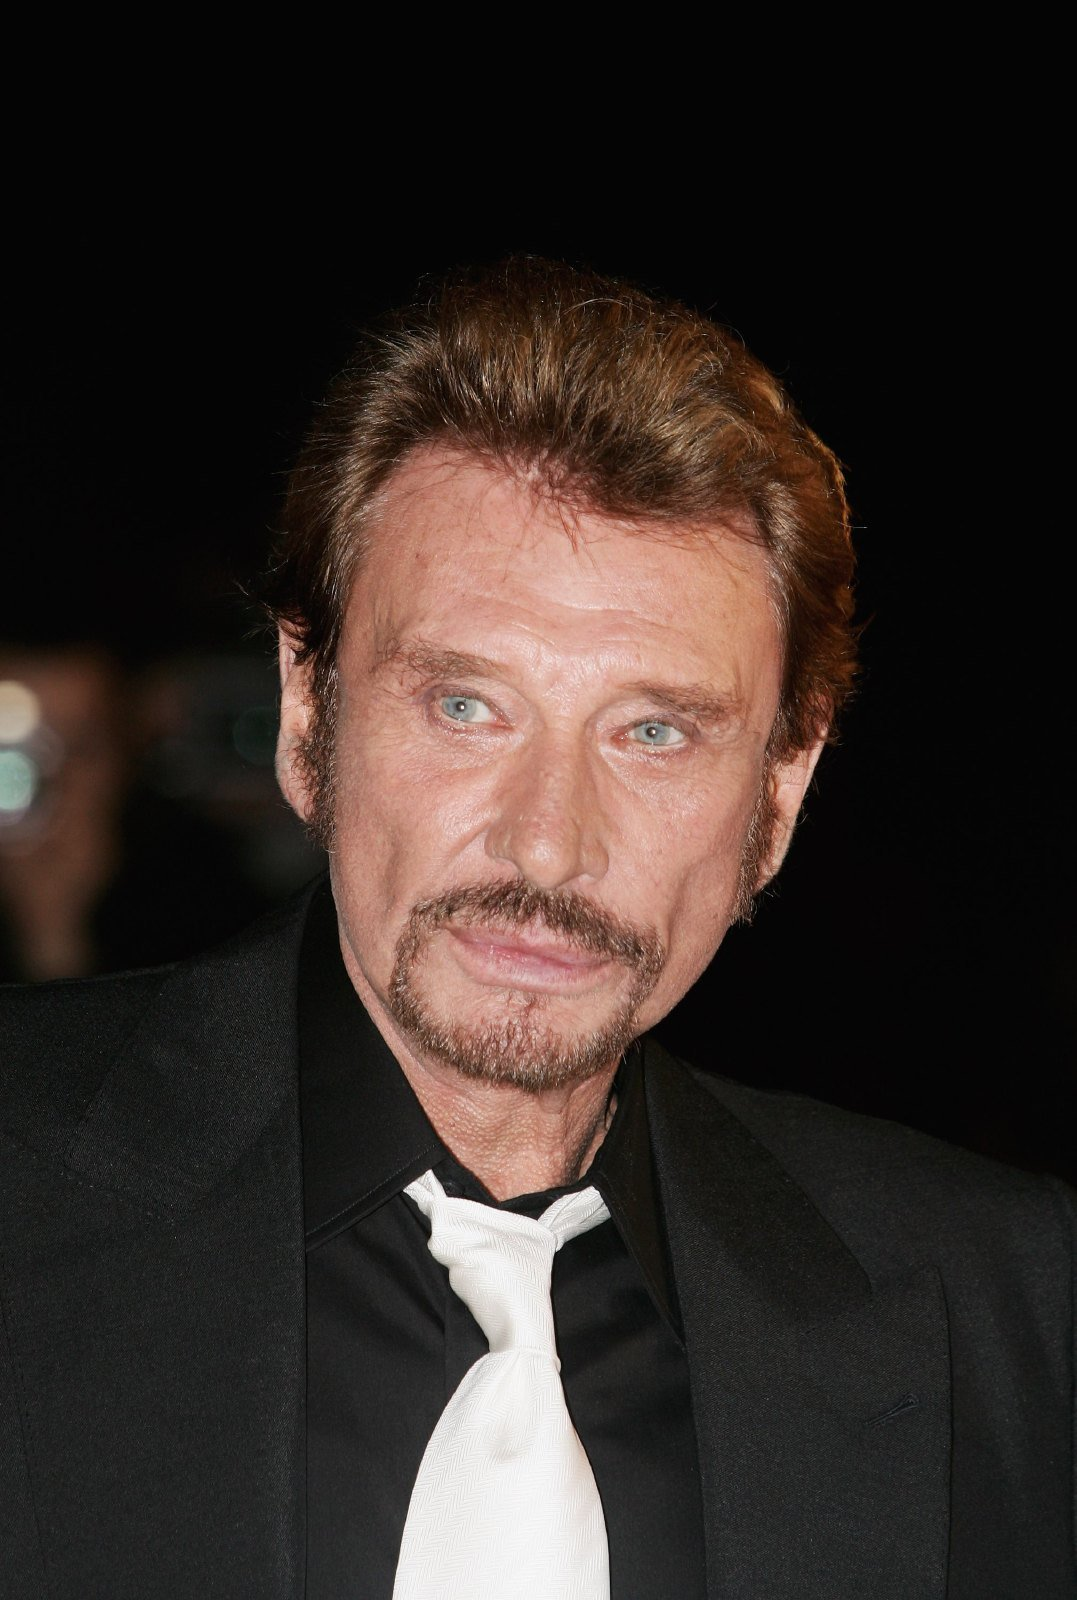 Johnny Hallyday au Palais des Festivals le 21 janvier 2006 à Cannes, France. | Photo : Getty Images